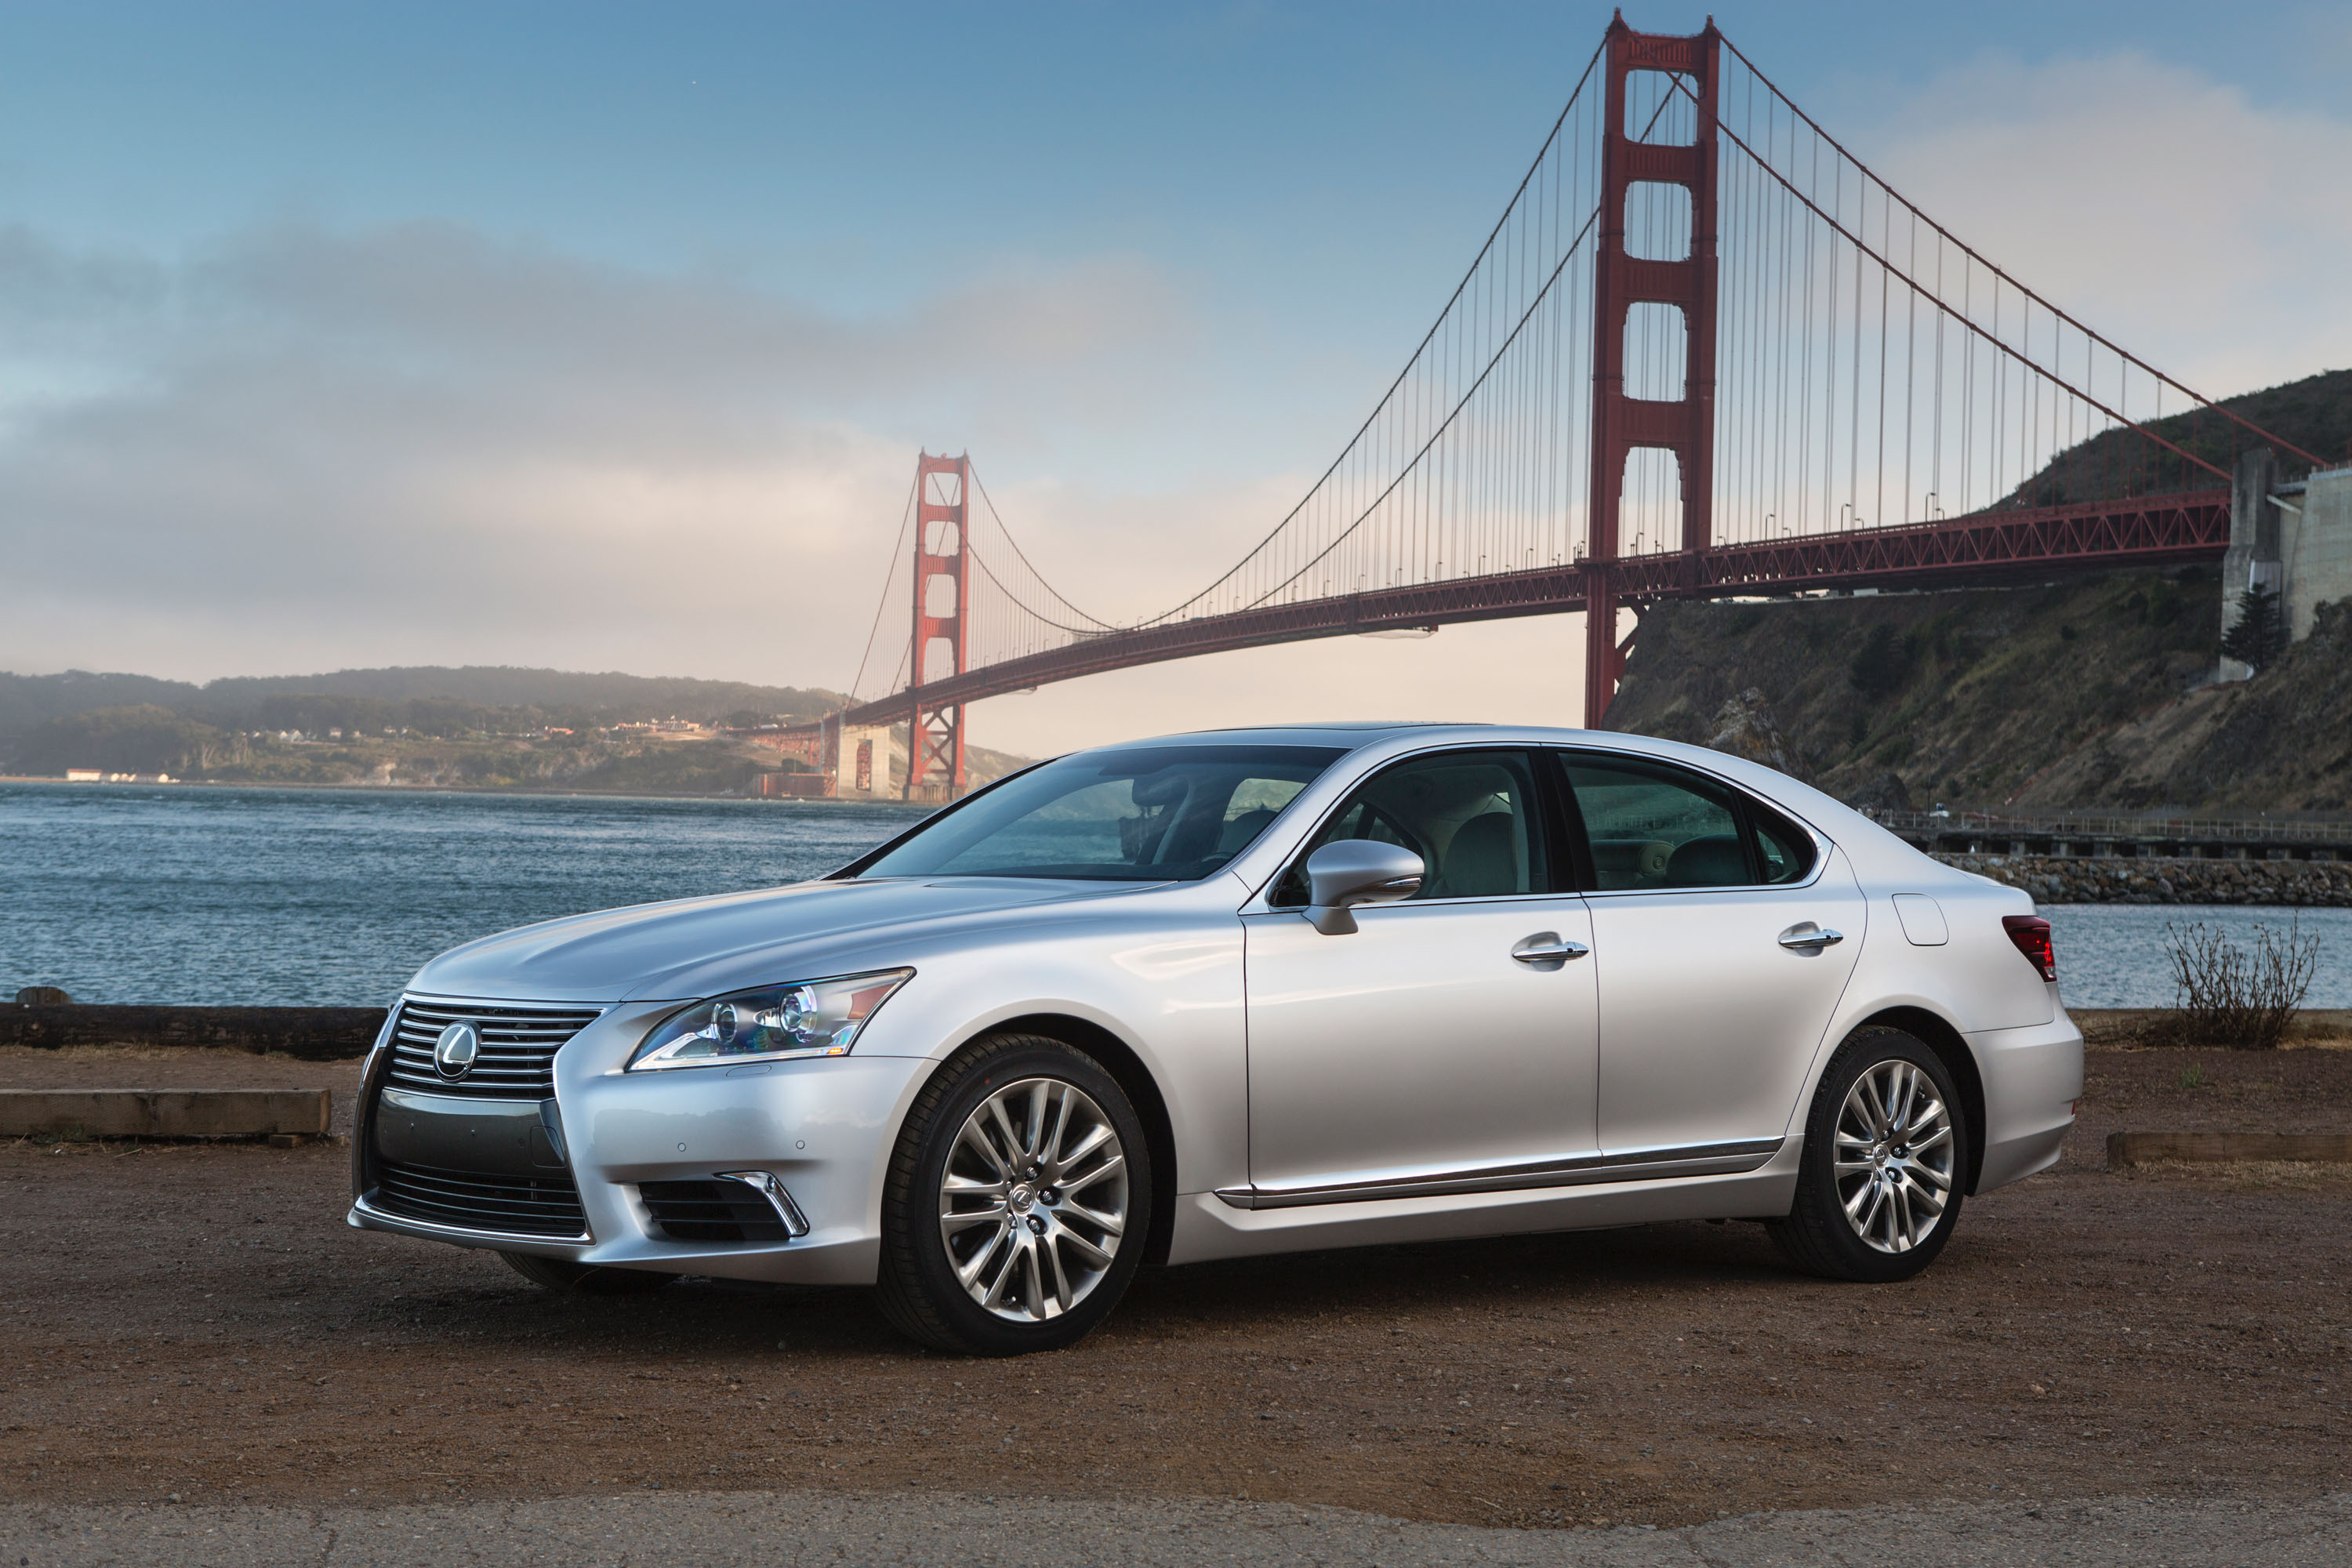 2015 Lexus LS 460 Review, Ratings, Specs, Prices, and Photos - The Car